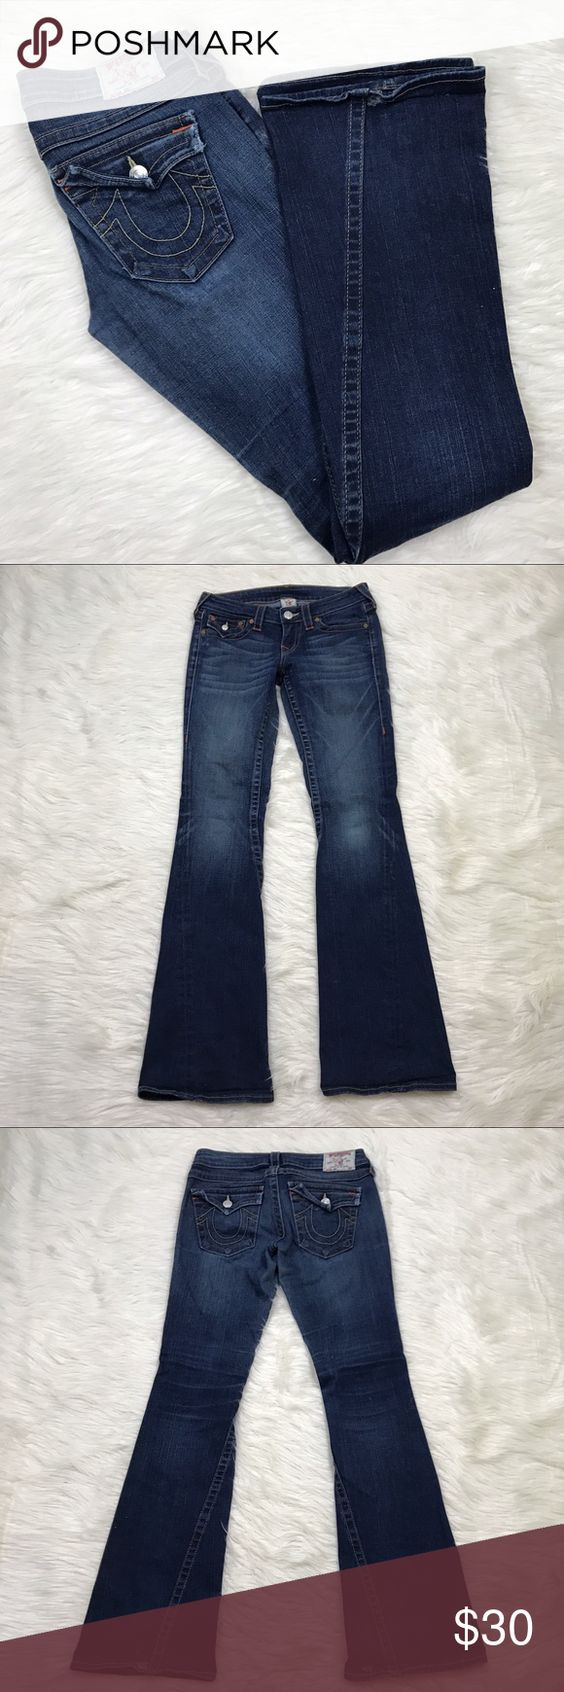 """[True Religion] Joey Flare Jeans Flap Pocket 27 Classic True Religion Joey jeans. Flare style. Zip fly with button closure. Flap back pockets.   🔹Fabric: 99% Cotton 1% Elastane 🔹Waist: 29"""" 🔹Rise: 7.5"""" 🔹Inseam: 34"""" 🔹Condition: Good pre-owned condition. 2 small holes in the bottom of each back hem.  *C31 True Religion Jeans Flare & Wide Leg"""